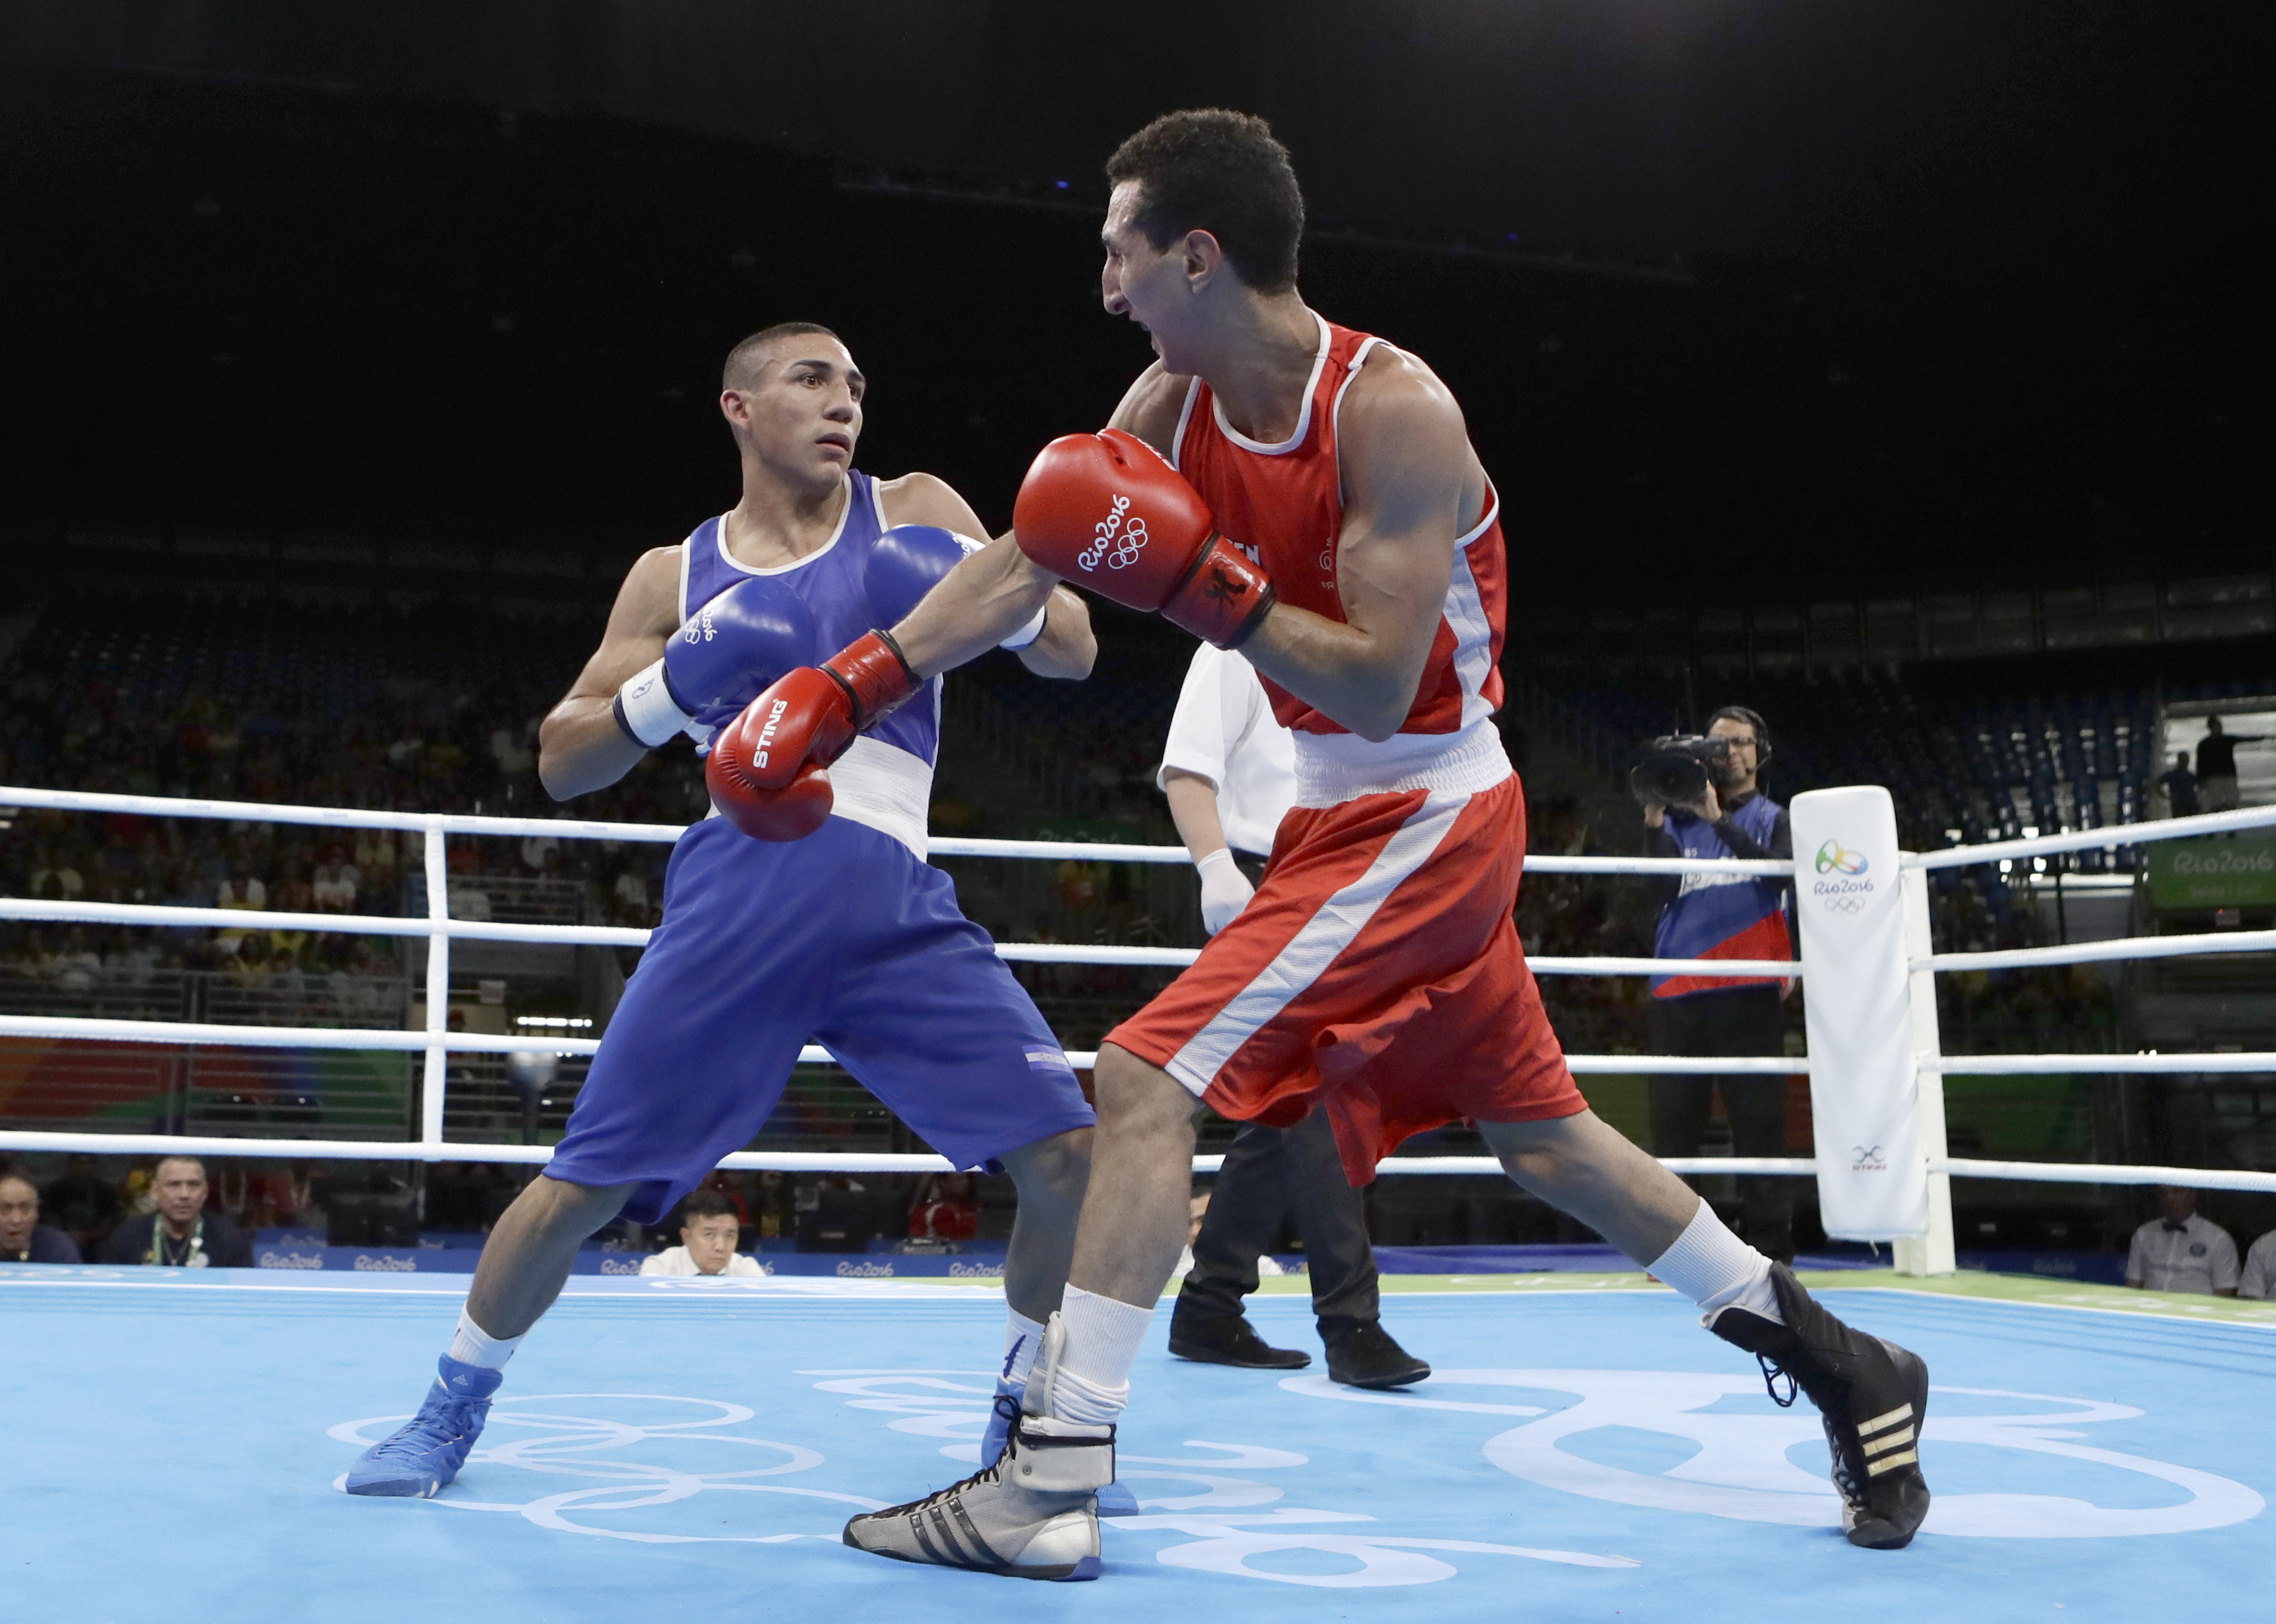 Honduras' Teofimo Andres Lopez Rivera, left, fights France's Sofiane Oumiha during a men's lightweight 60-kg preliminary boxing match at the 2016 Summer Olympics in Rio de Janeiro, Brazil, Sunday, Aug. 7, 2016. (AP Photo/Frank Franklin II)